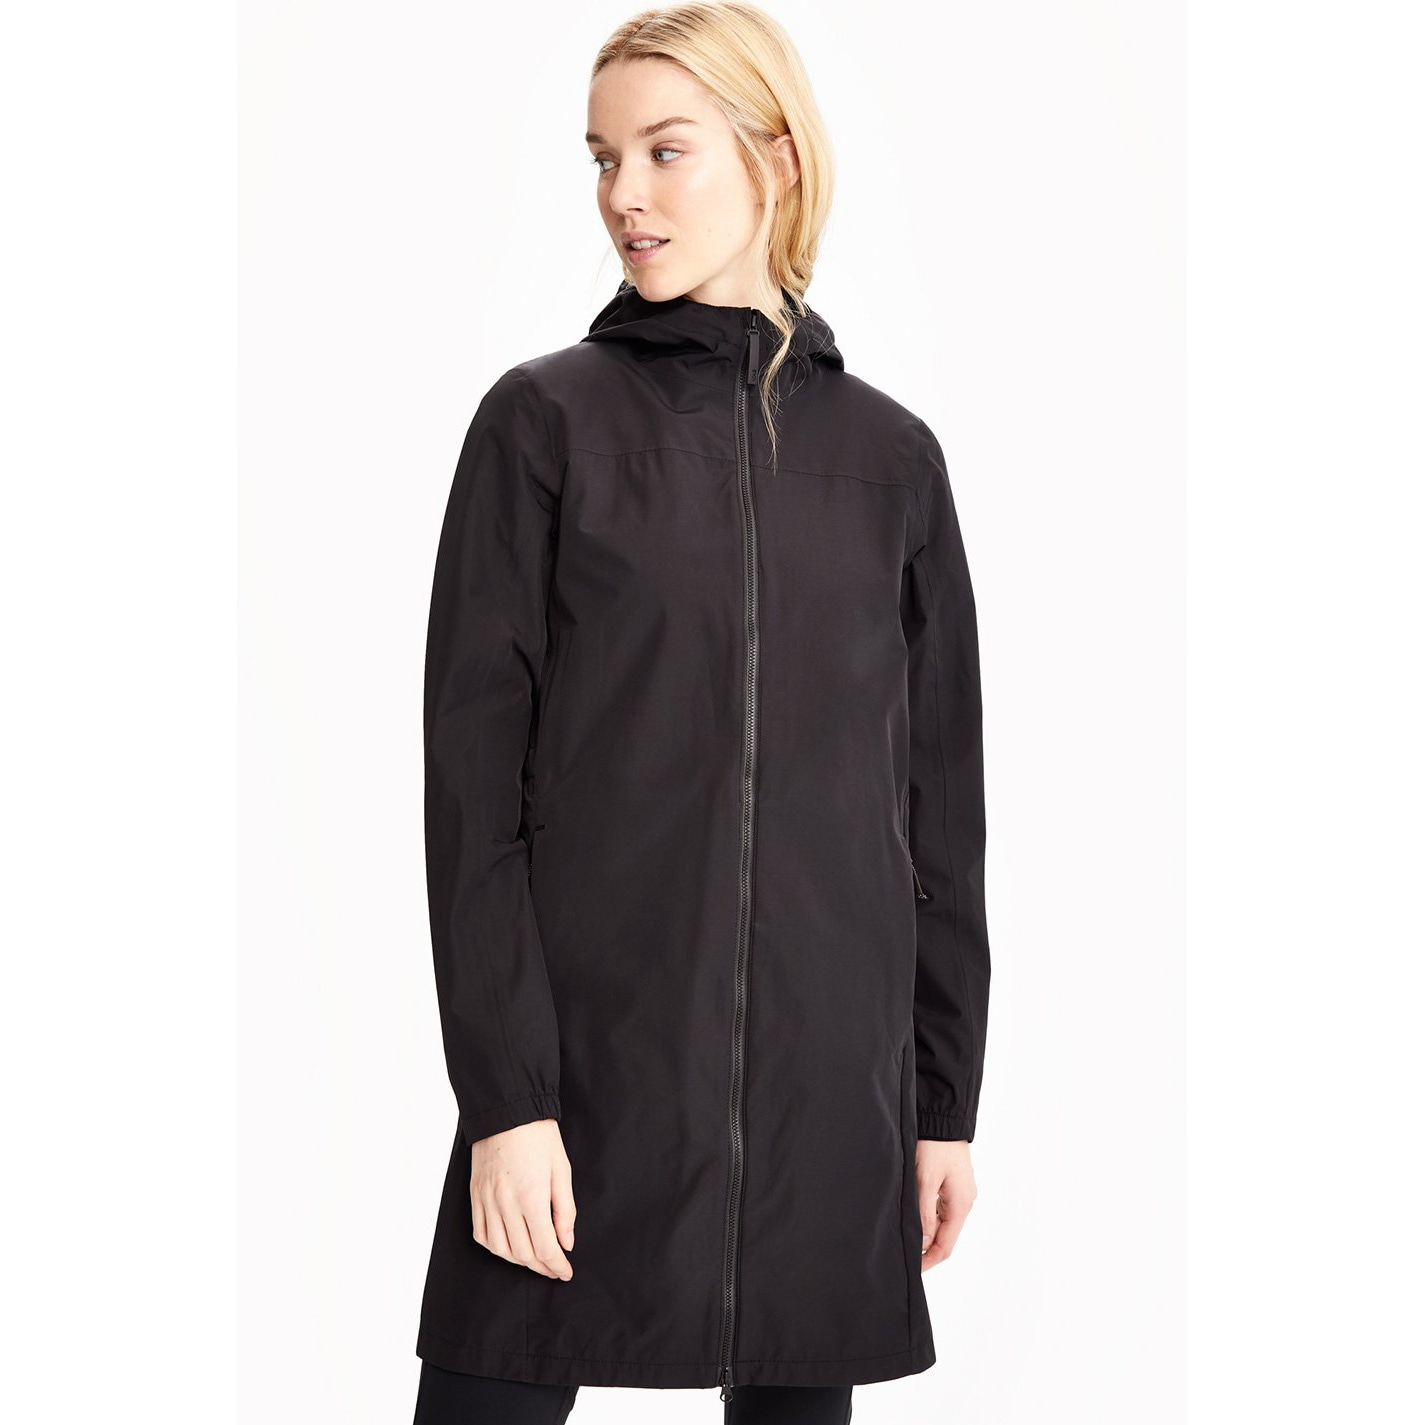 Piper Jacket - Women's